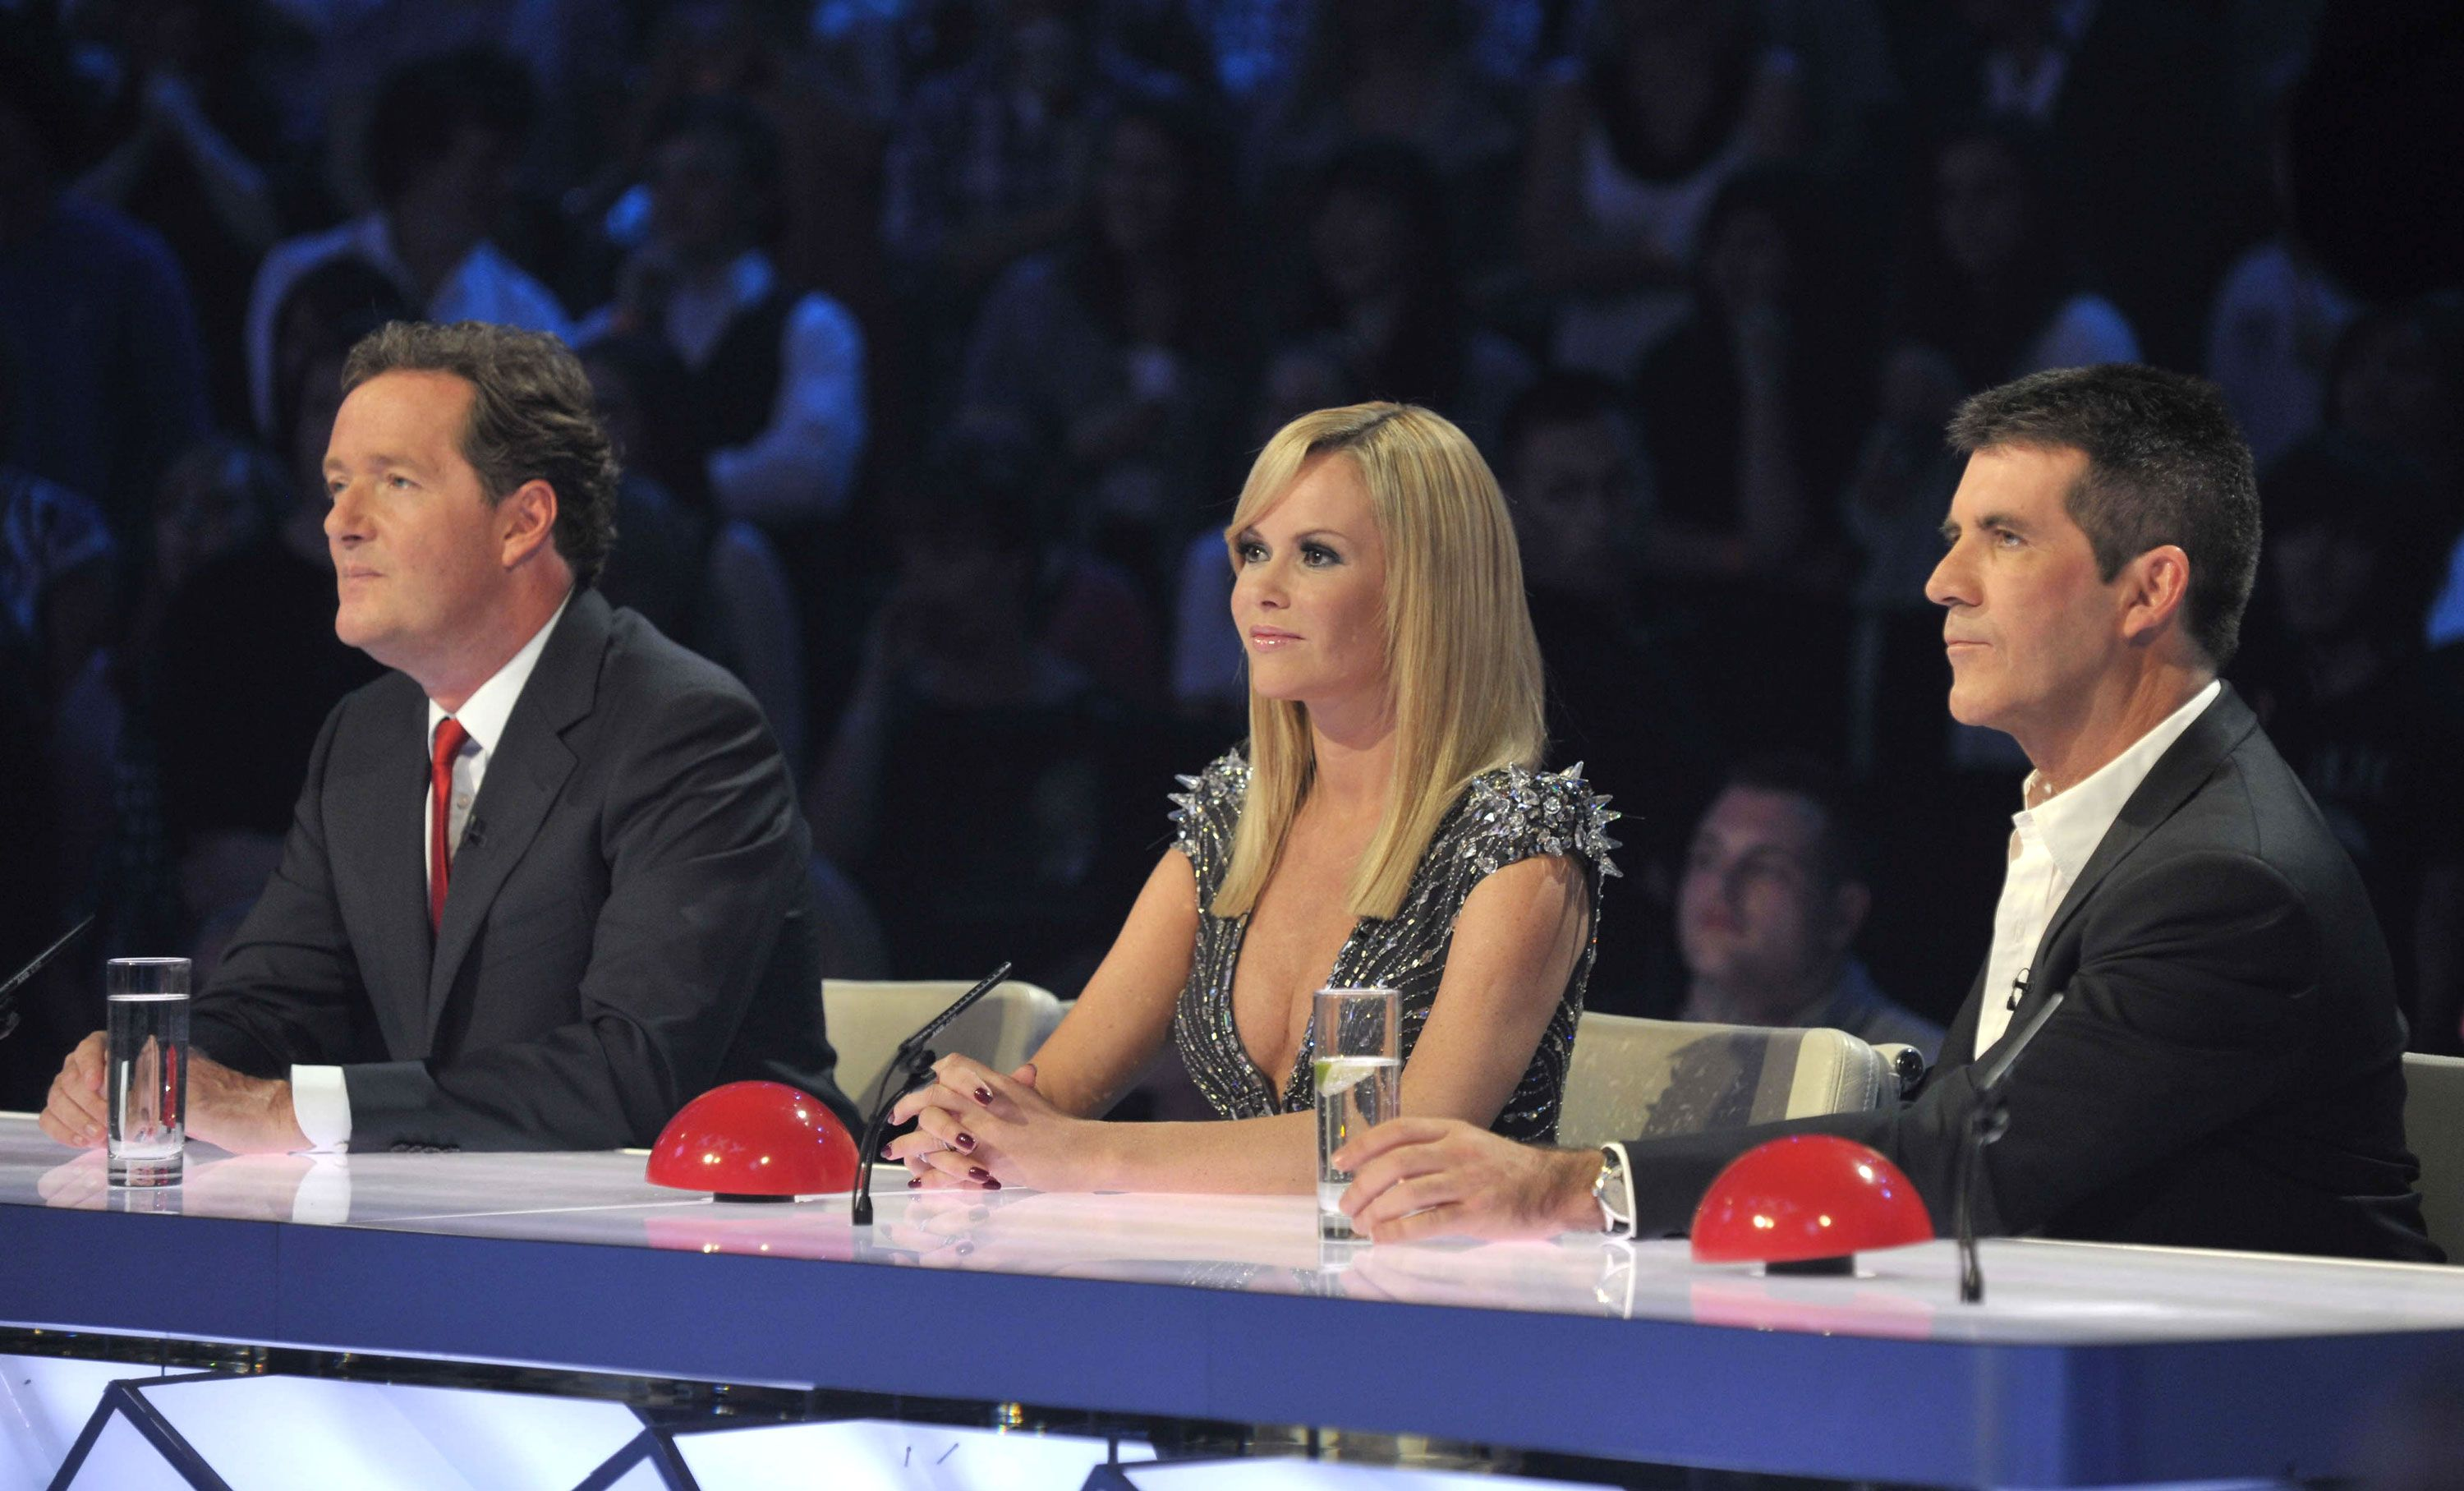 Piers Morgan as a judge on Britain's Got Talent with Amanda Holden and Simon Cowell | Credits to Digital Spy